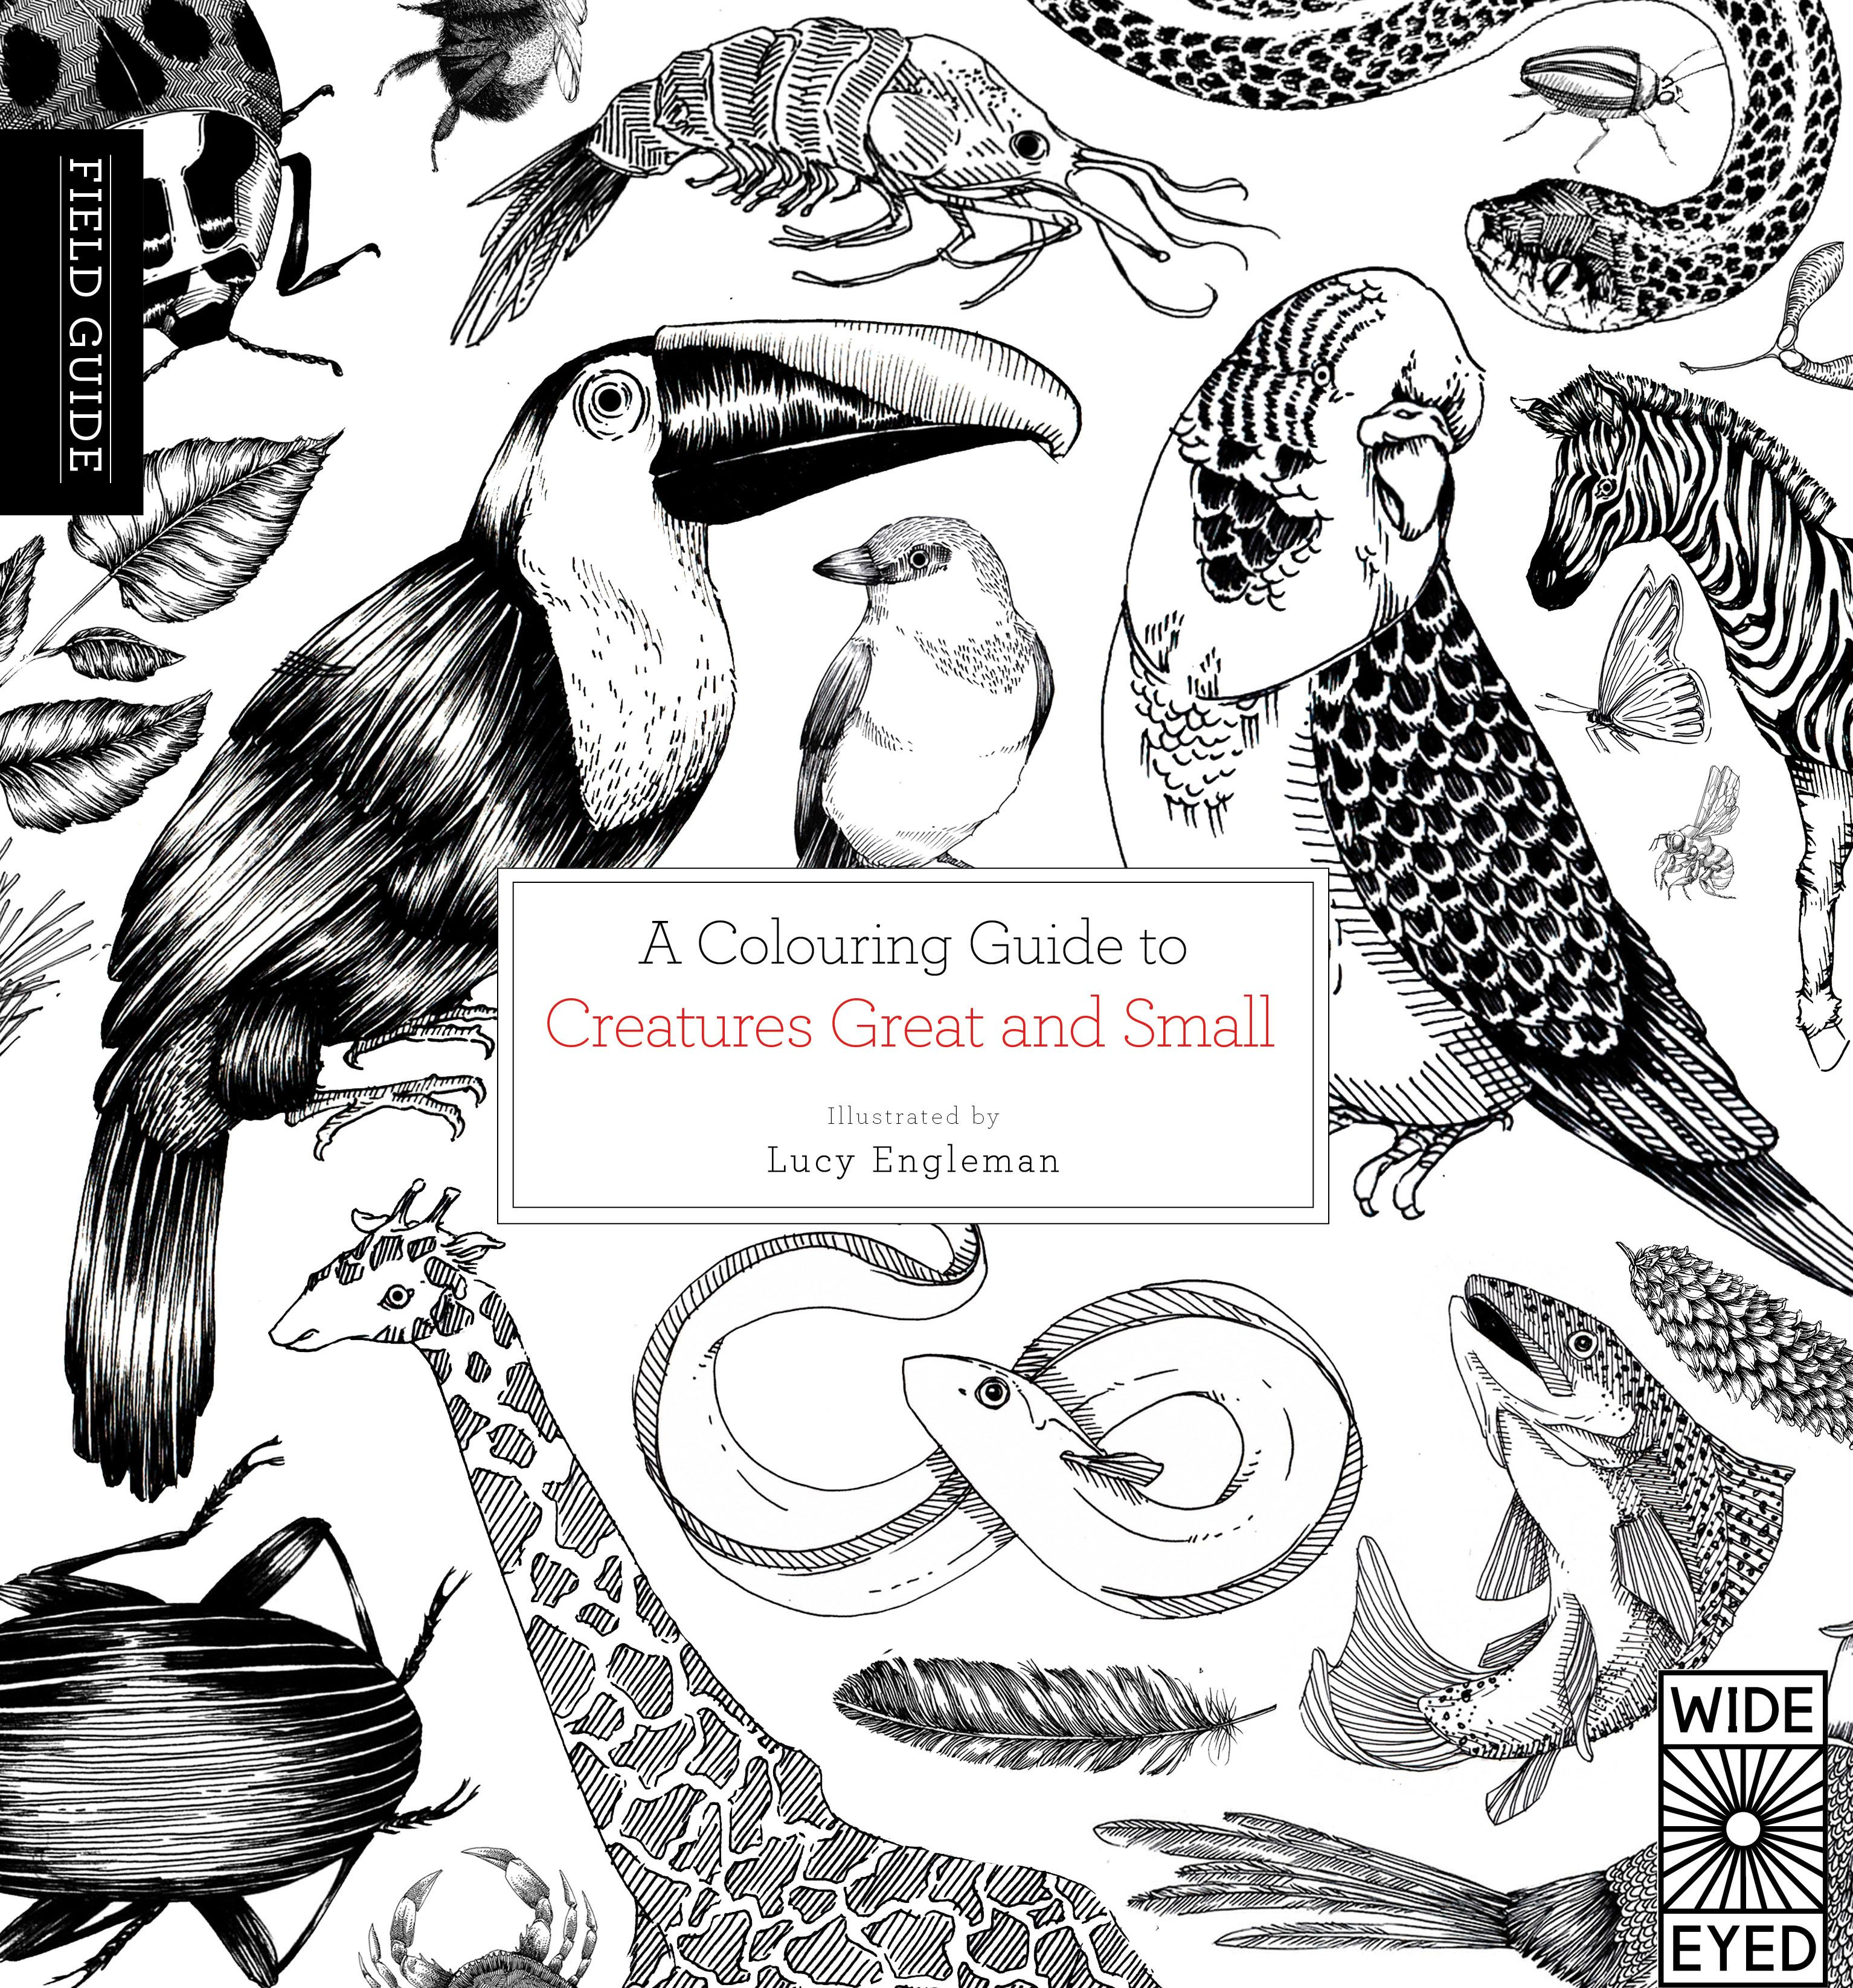 An Informative Inspirational Colouring Guide To Creatures Great And Small The Field